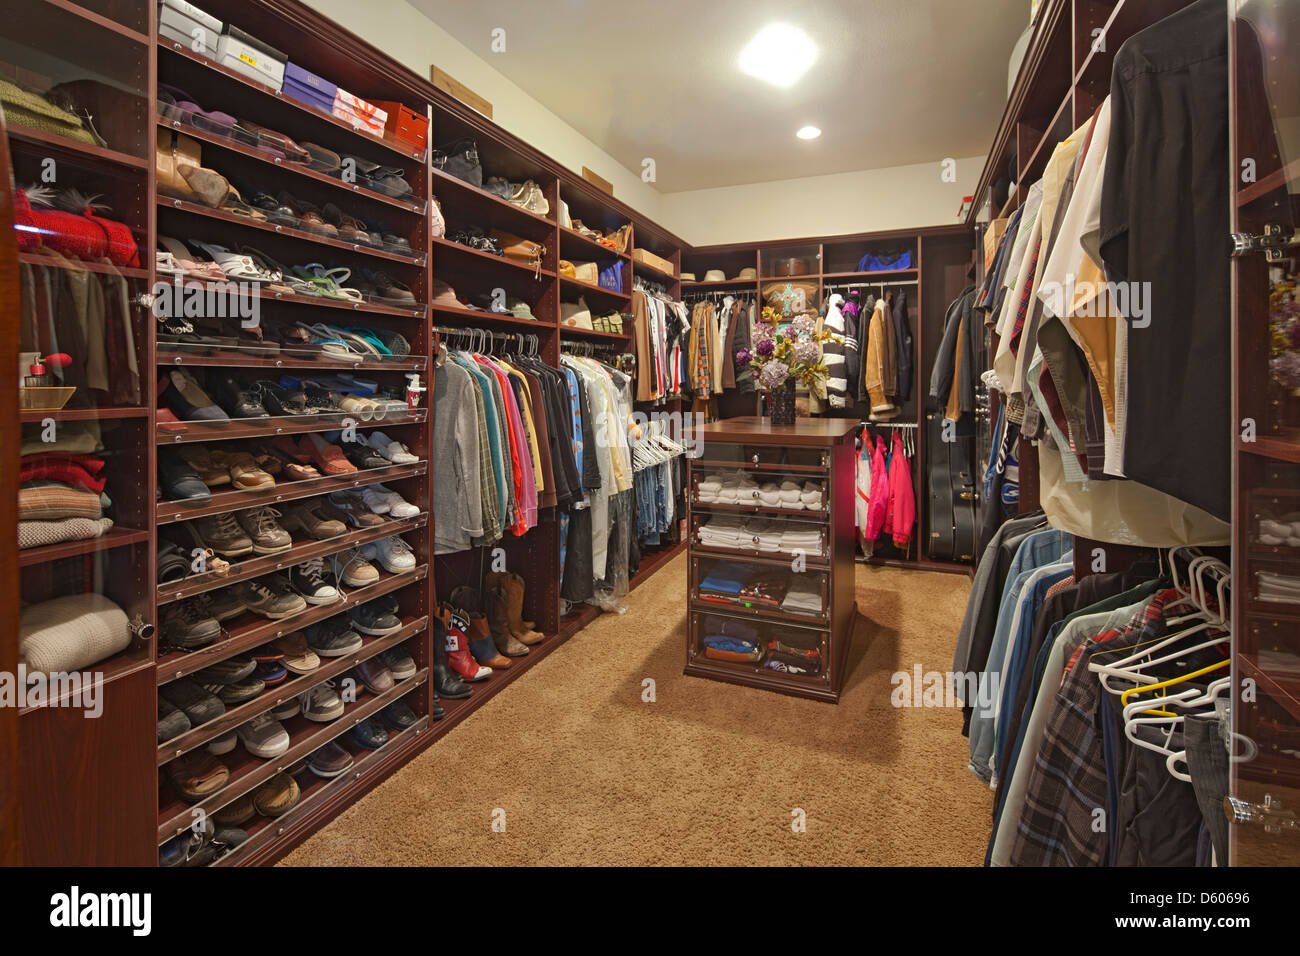 Walk in closet with organized clothing - Stock Image